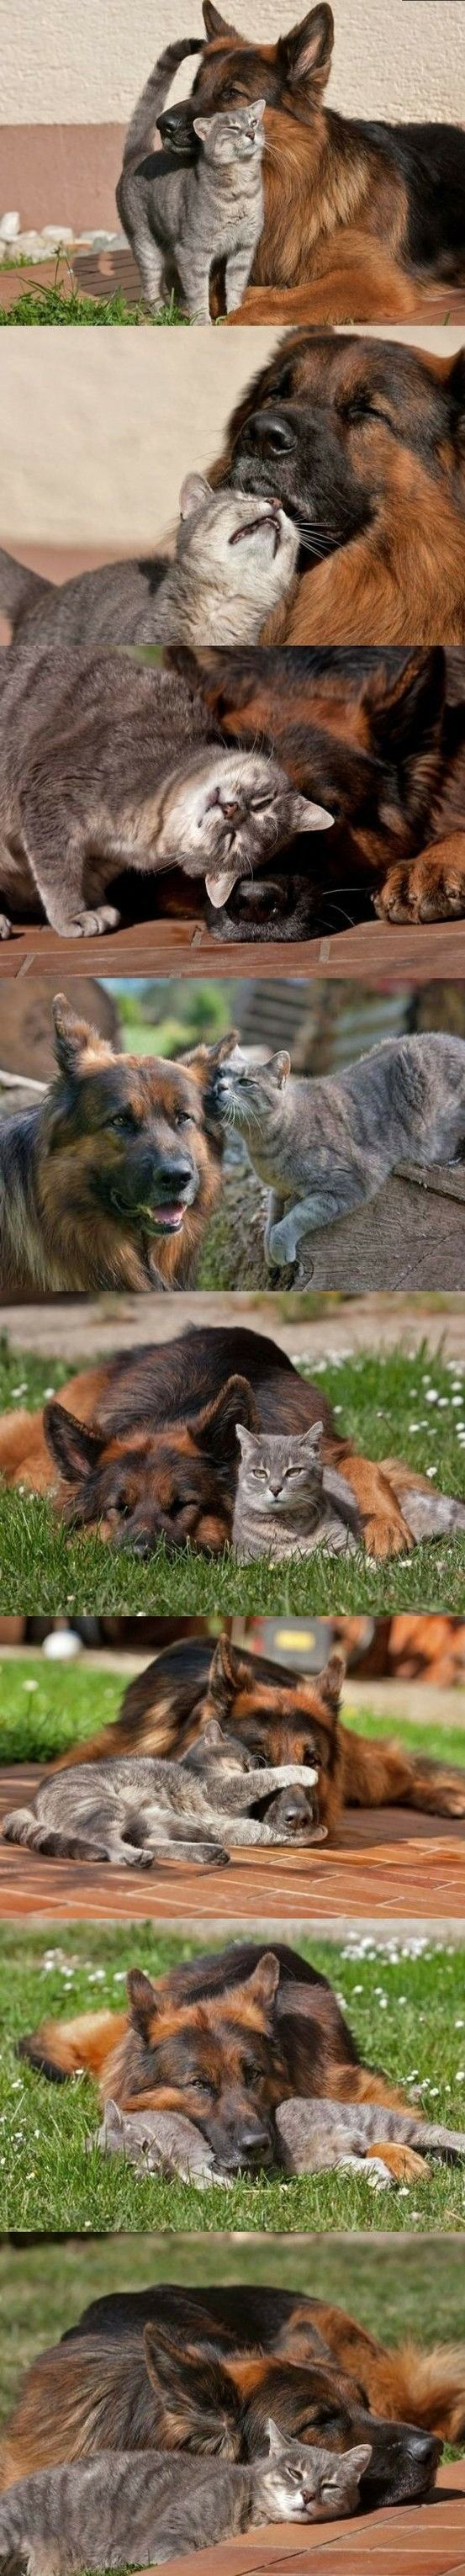 german shepherd and cat are best of friends...just too adorable! - Follow me http://www.pinterest.com/cattreehouse/